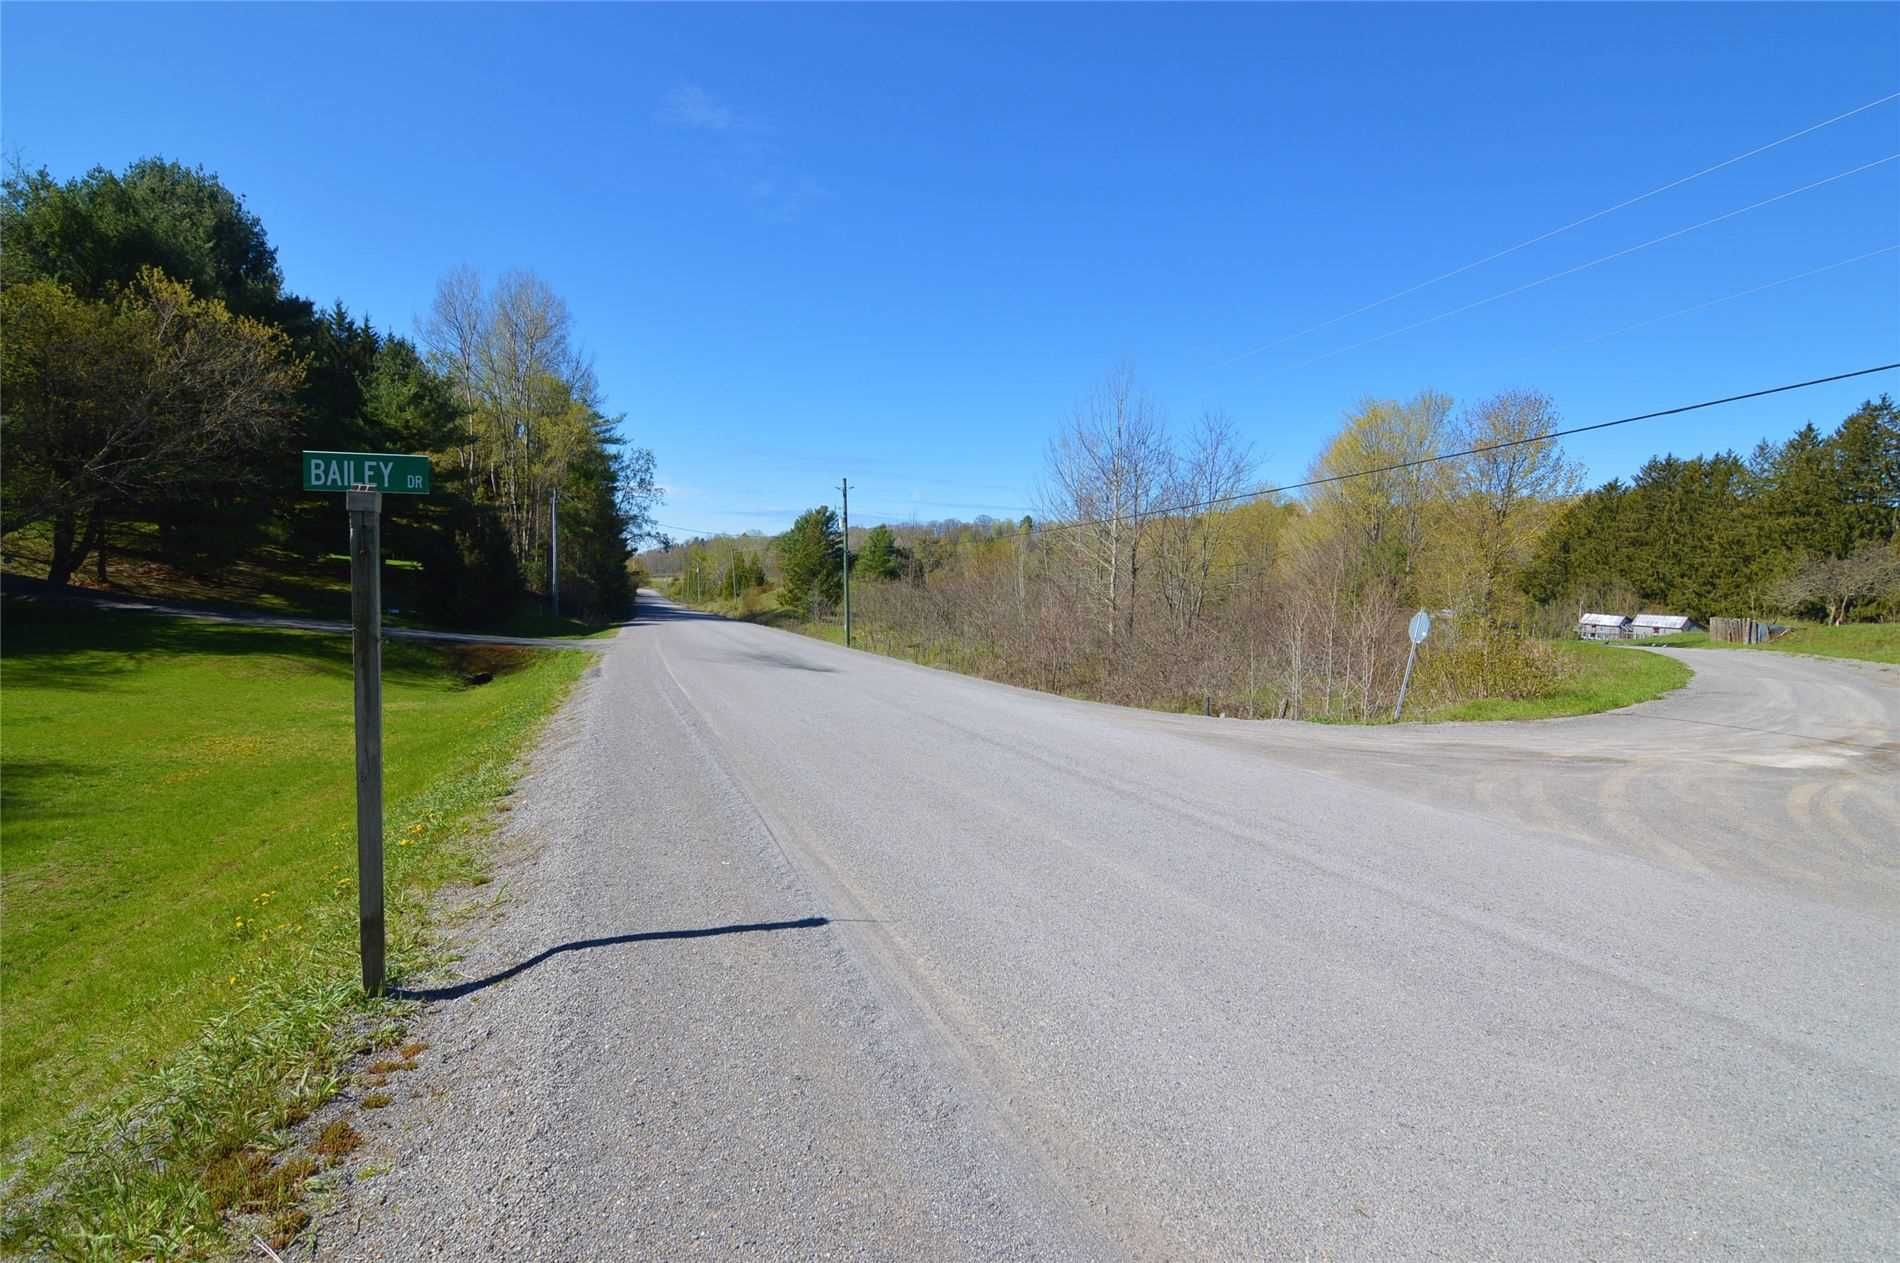 Main Photo: Vac Lot Bailey Drive in Cramahe: Colborne Property for sale : MLS®# X5225204